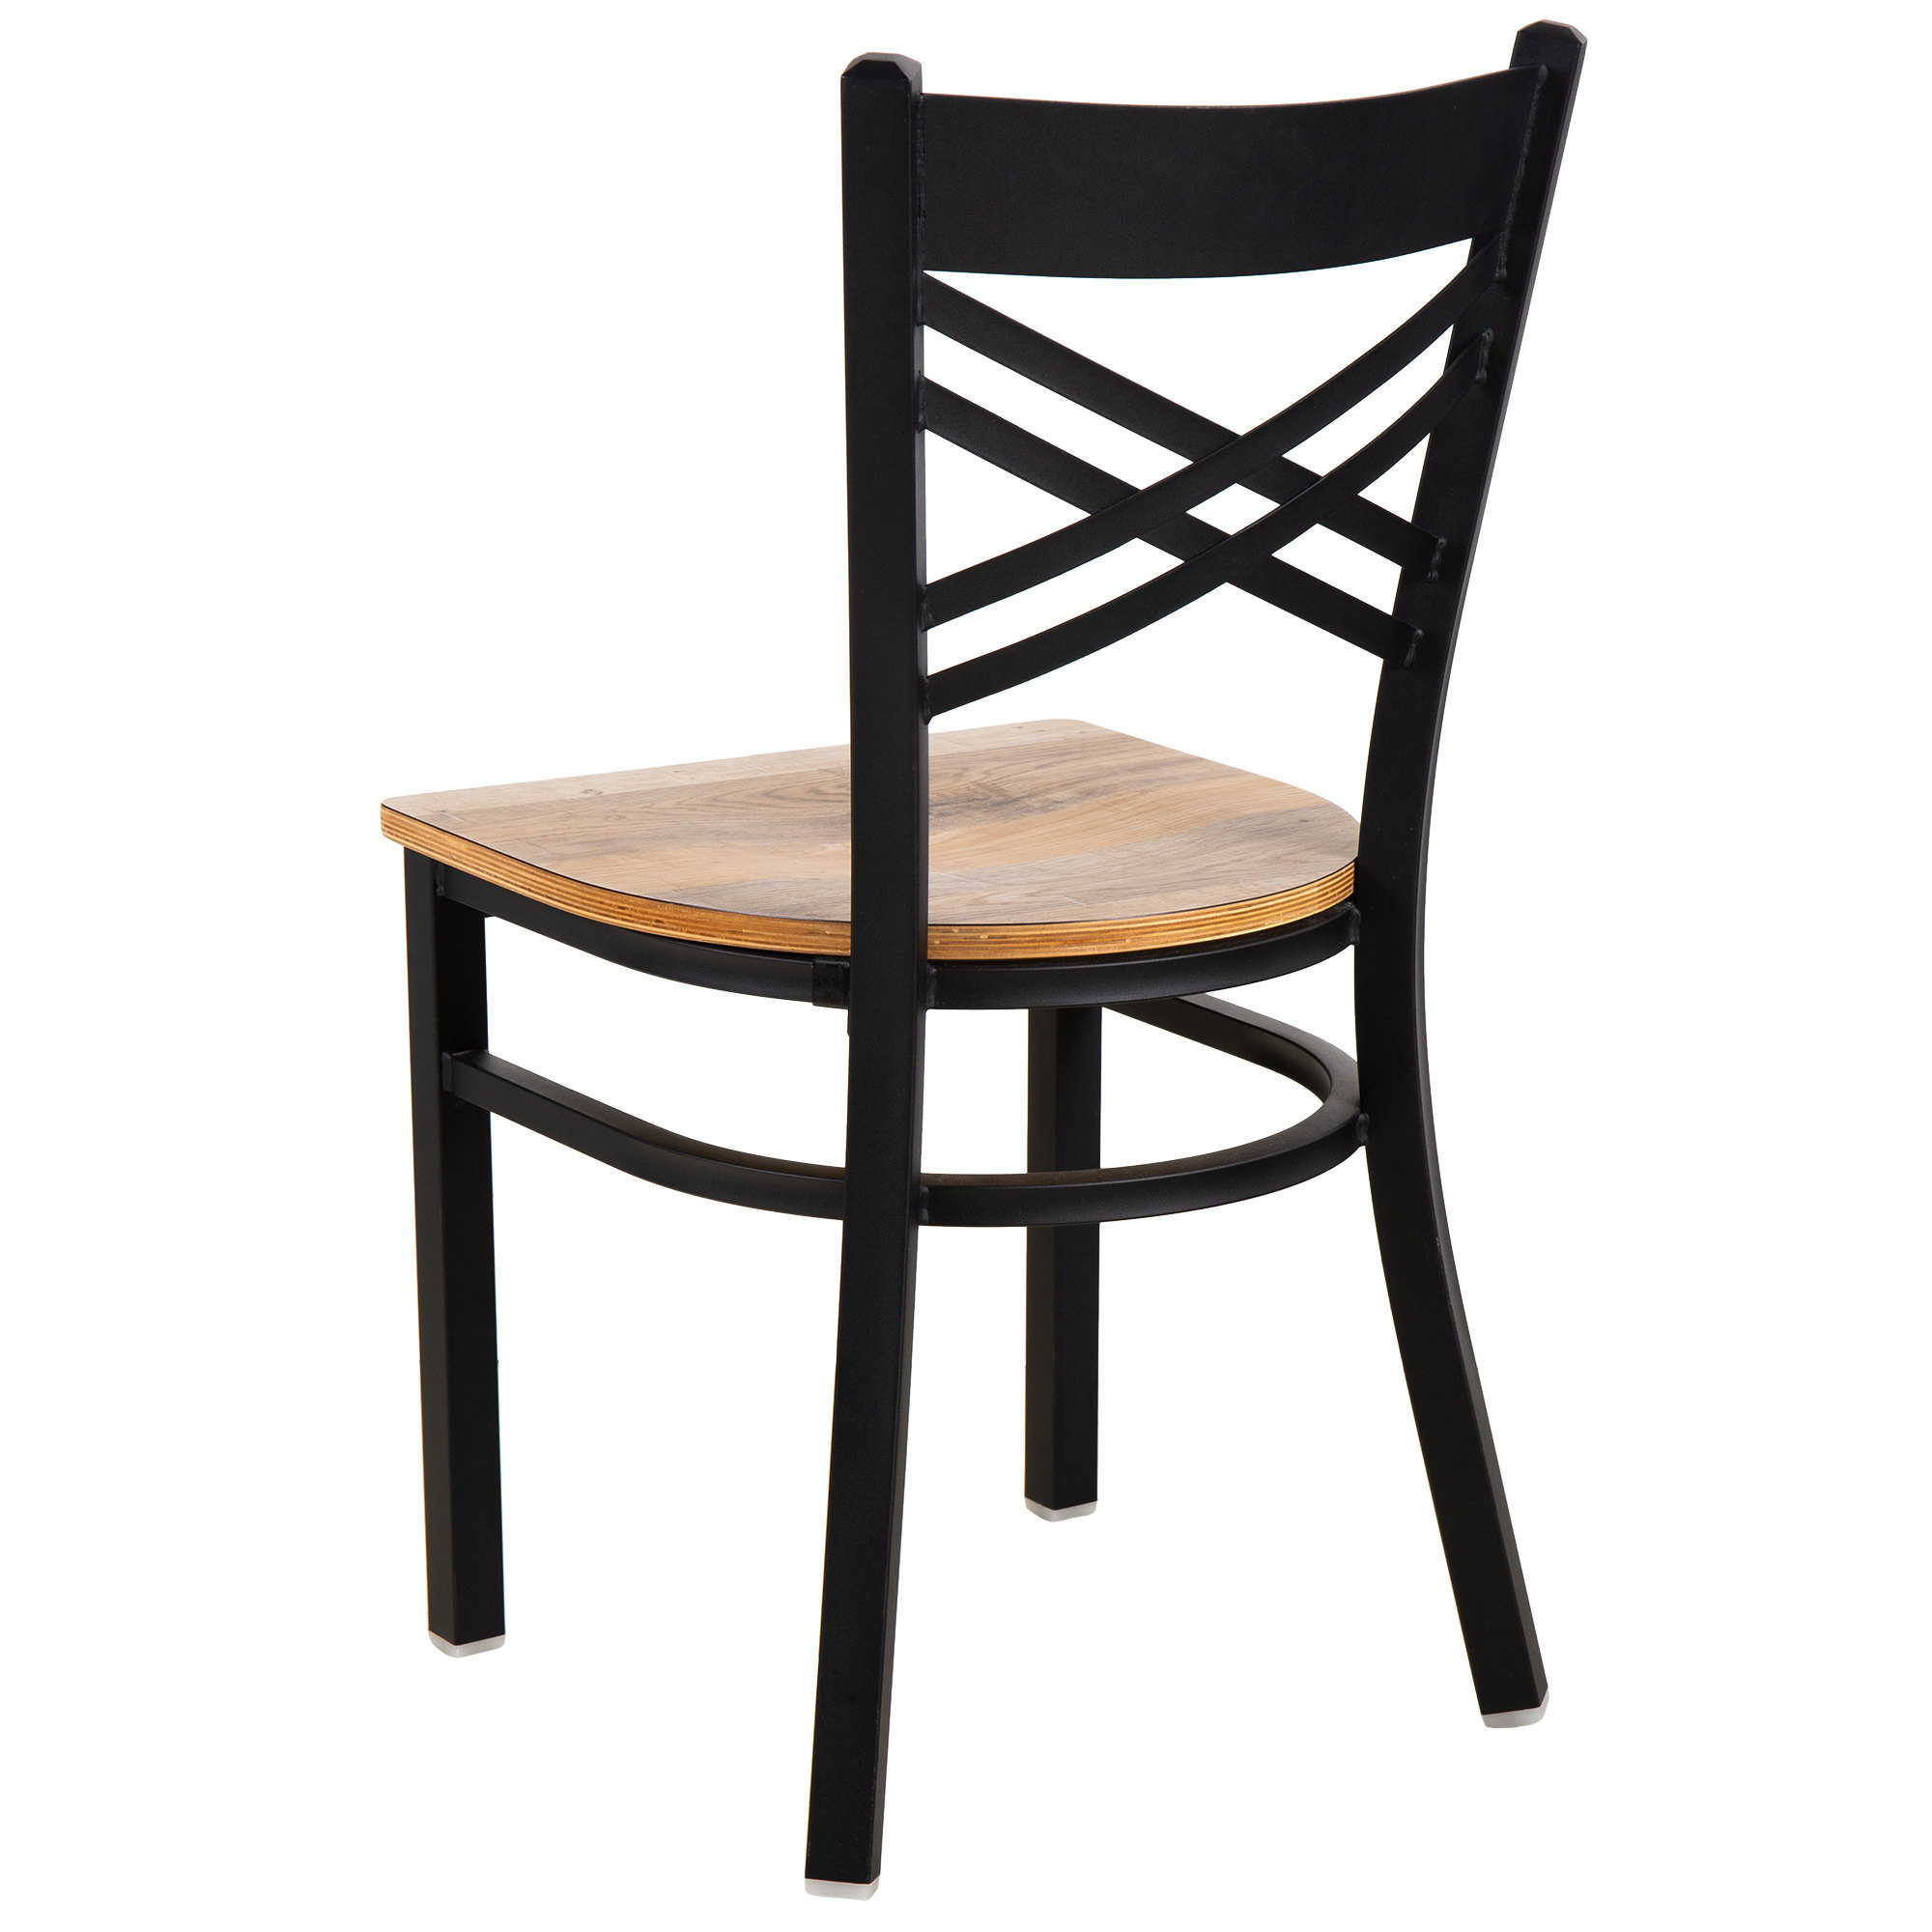 #154 - Black Cross Back Design Restaurant Metal Chair with Driftwood Wood Seat